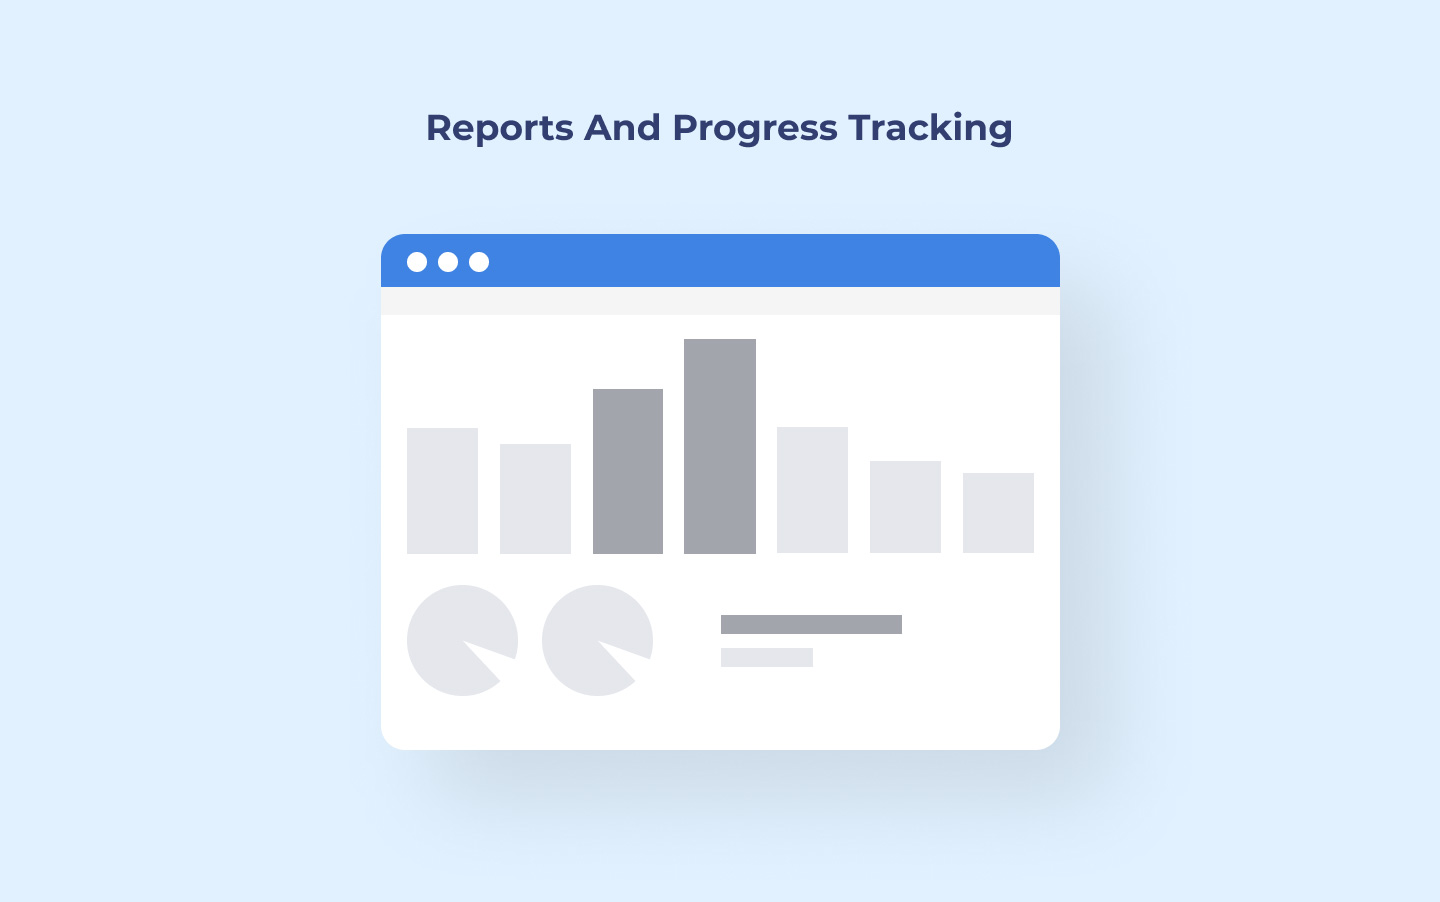 Reports and progress tracking